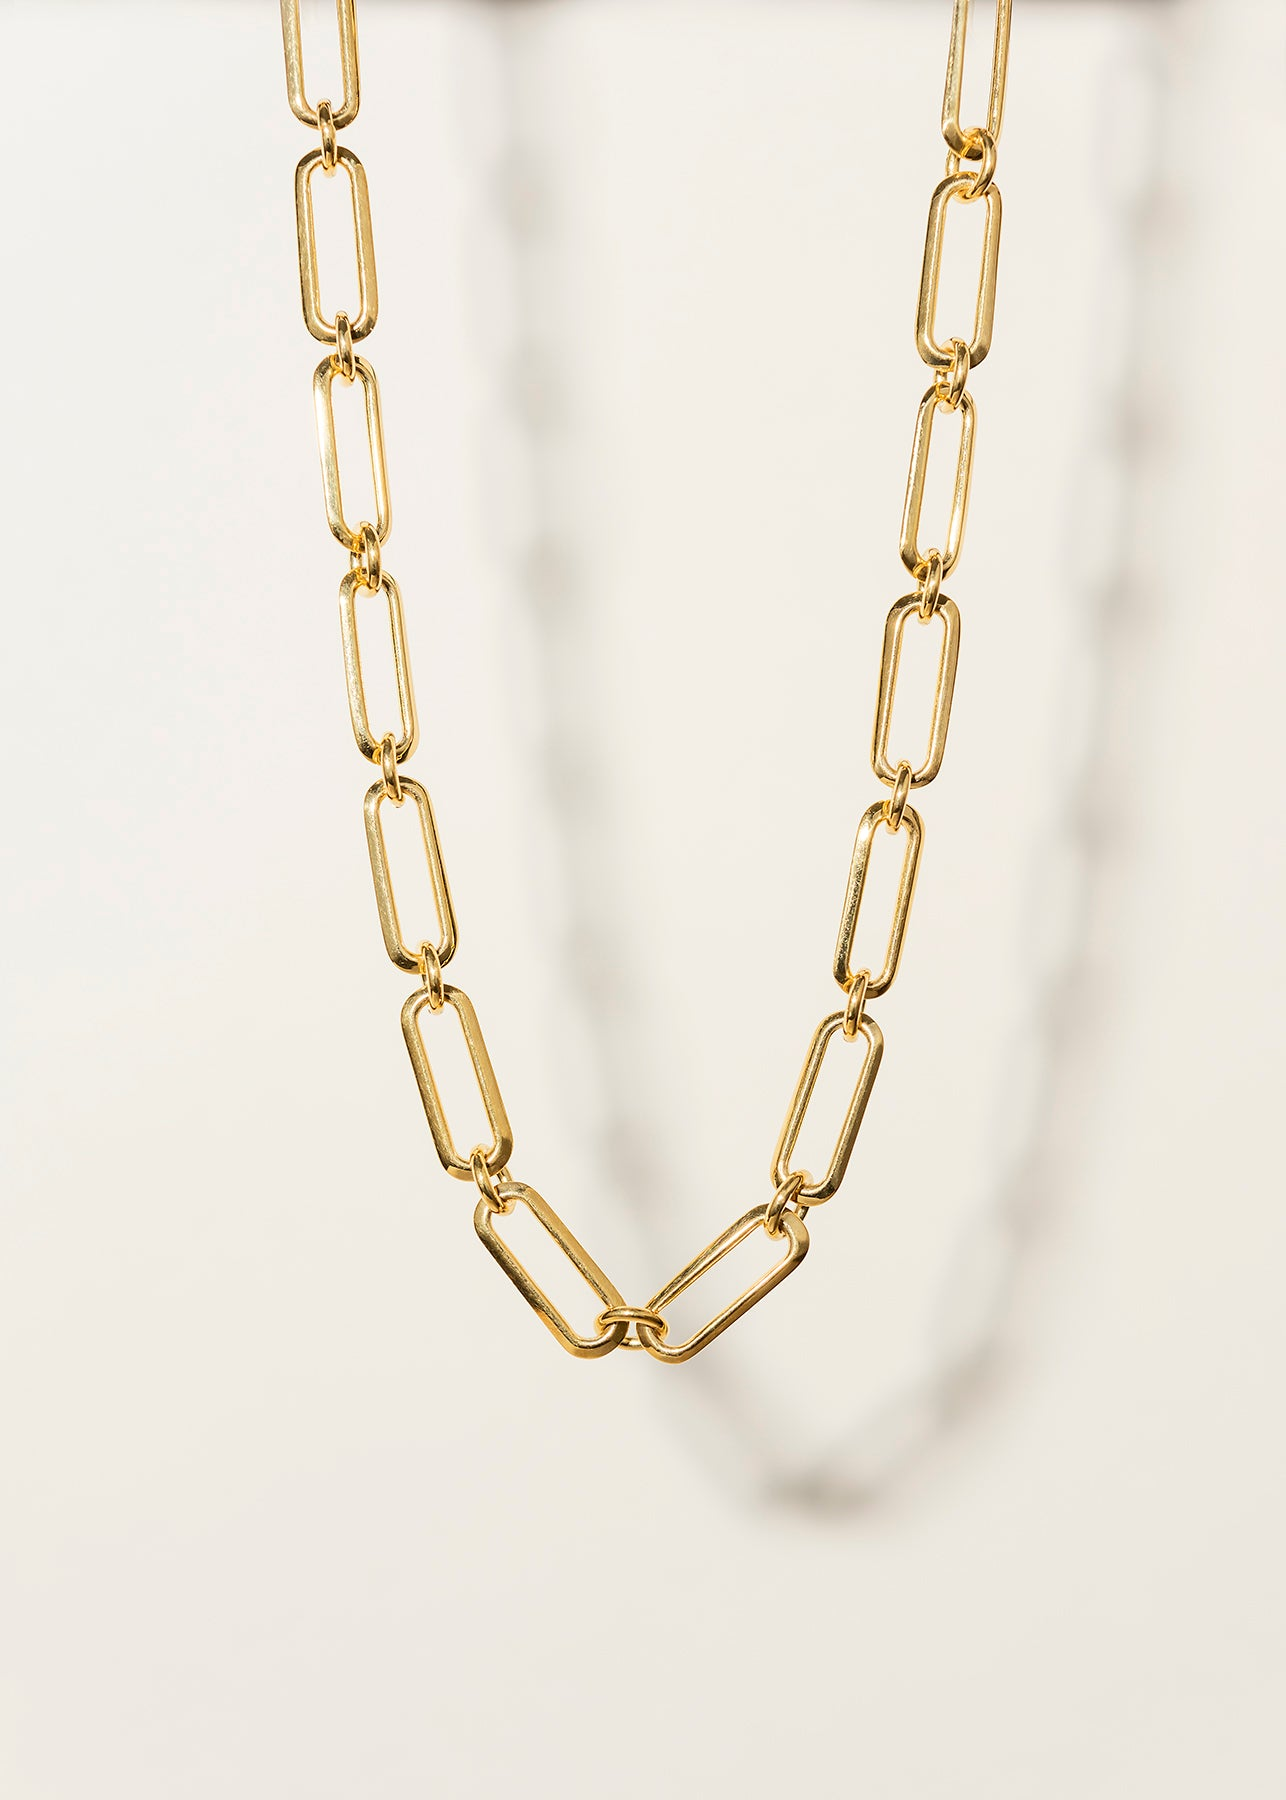 Middle Chain Necklace